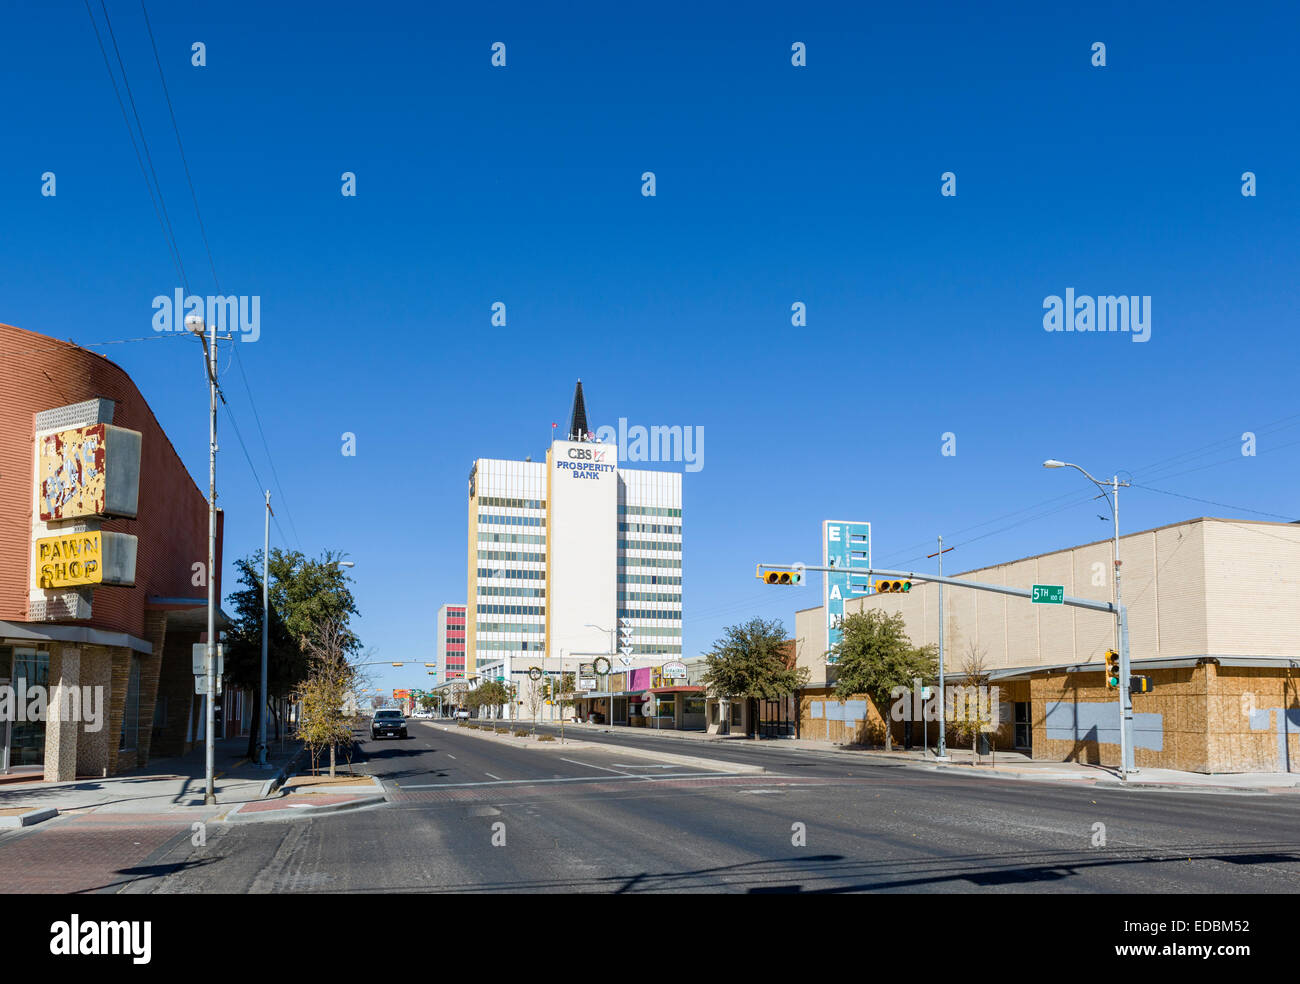 North Grant Avenue at the intersection with 5th Street in downtown Odessa, Texas, USA - Stock Image